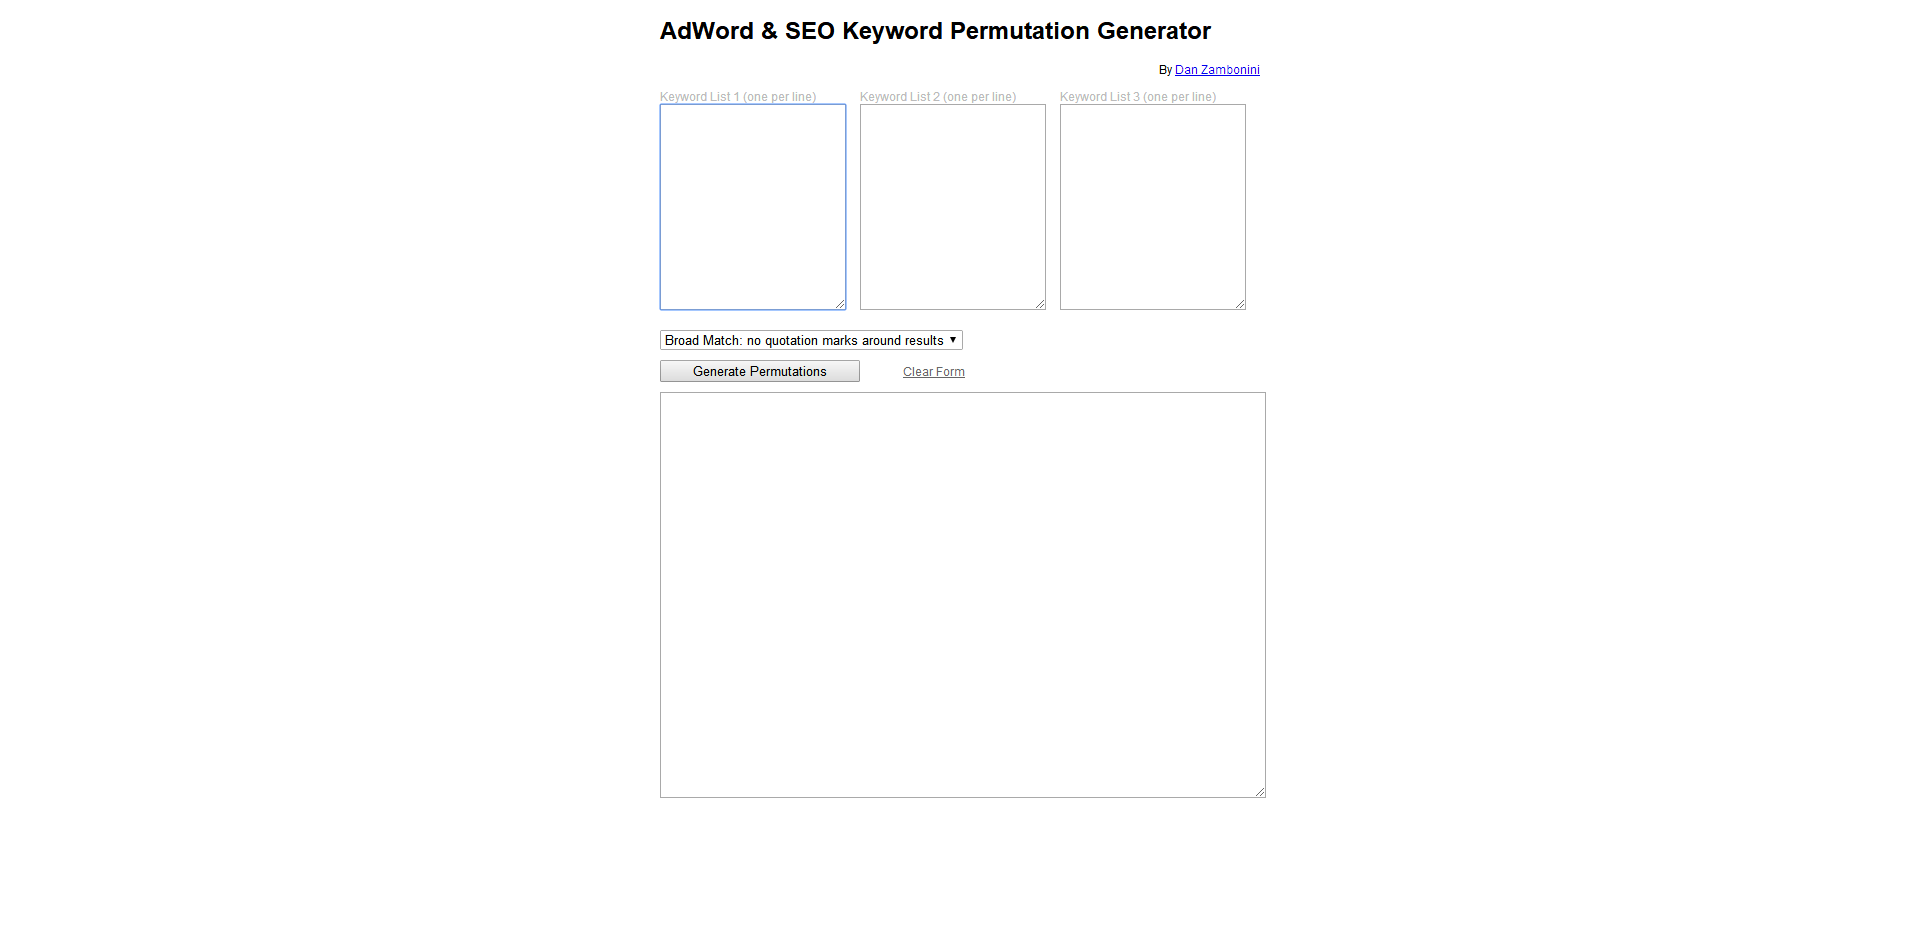 AdWord & SEO Keyword Permutation Generator-one